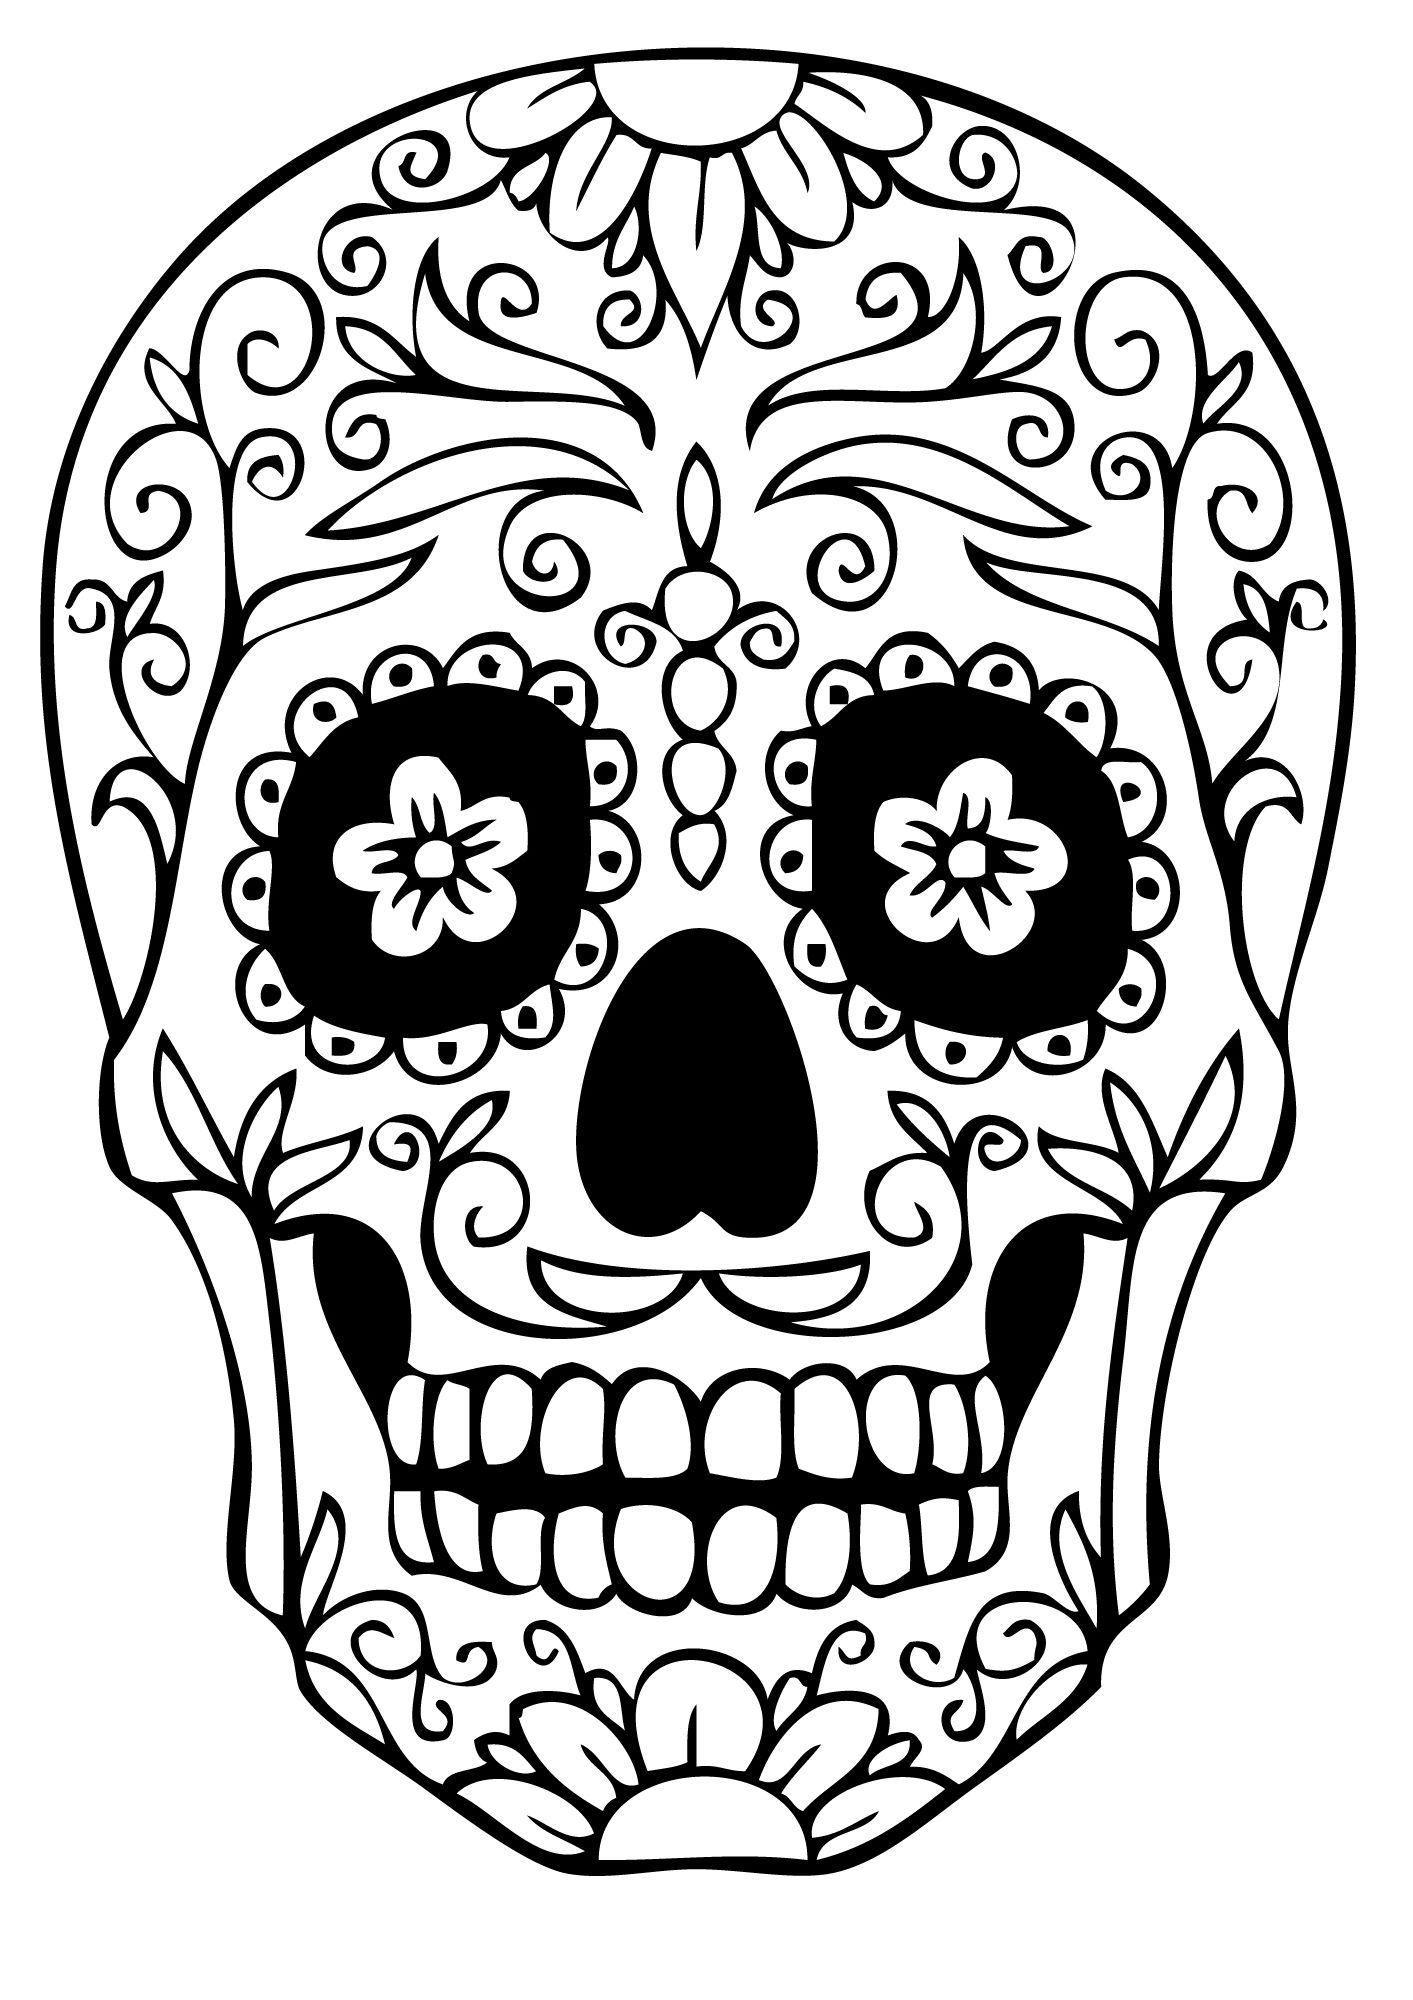 free printable sugar skull coloring pages Pin by Kris McCurley on Quilt ideas | Pinterest | Skull coloring  free printable sugar skull coloring pages